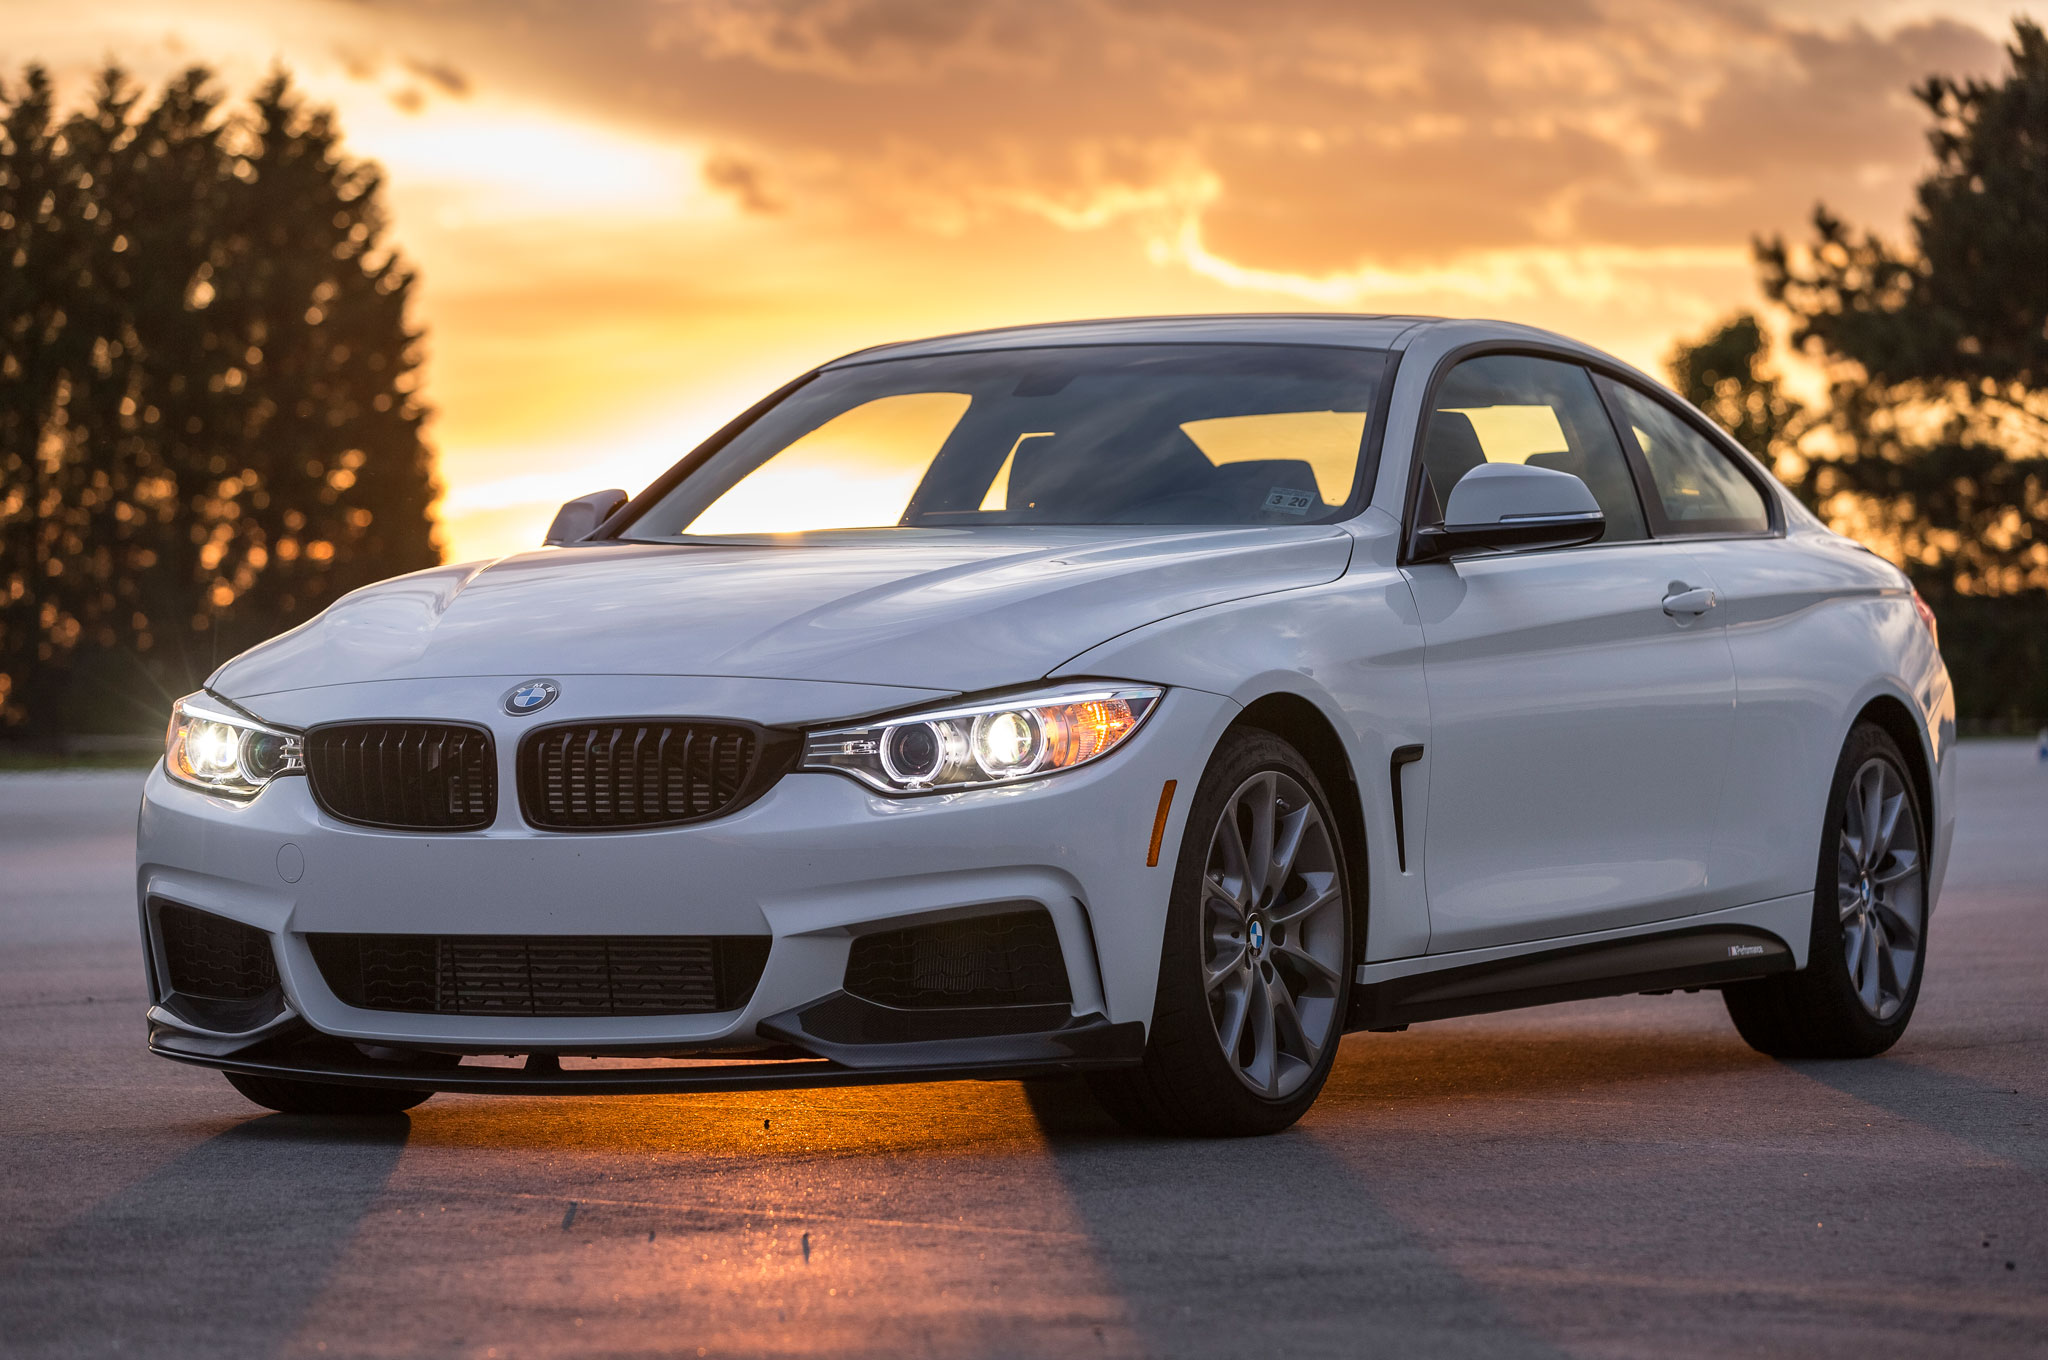 2016 bmw 435i zhp coupe edition gains 35 hp upgraded chassis for 11 435